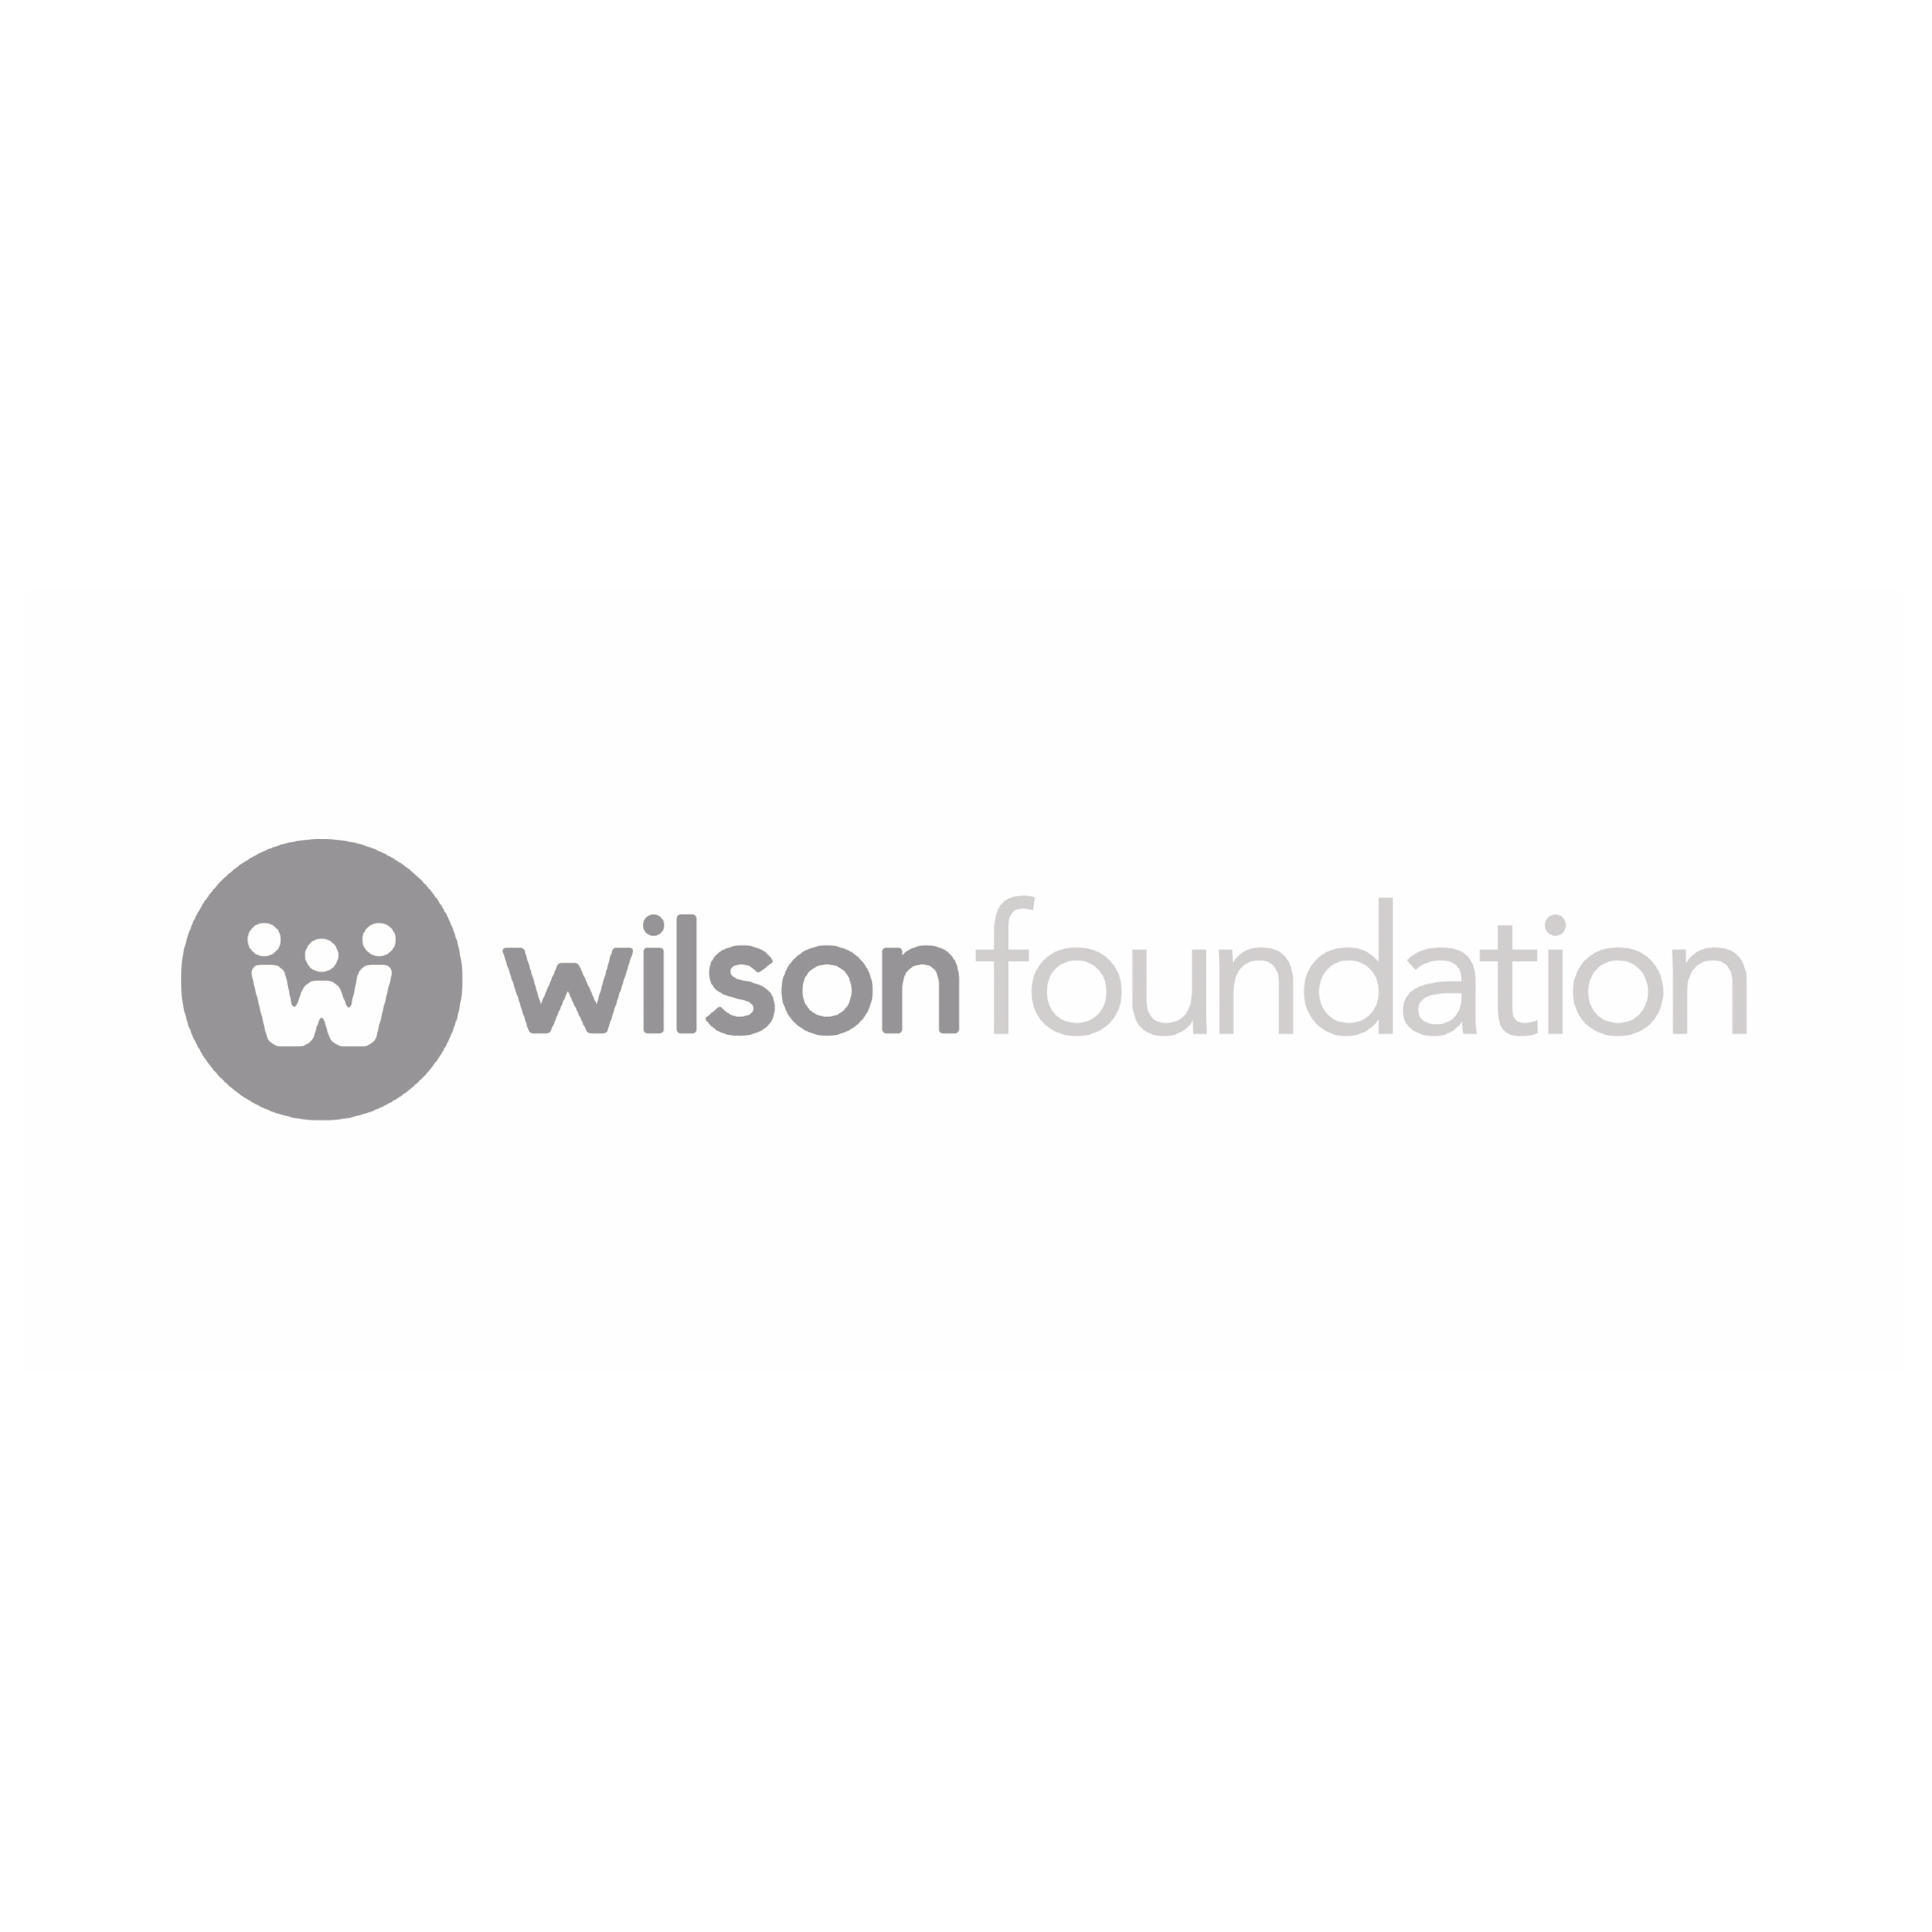 We coordinated the rollout of the National Center on Family Homelessness's groundbreaking study on homeless mothers on behalf of the study's sponsor, the Wilson Foundation.